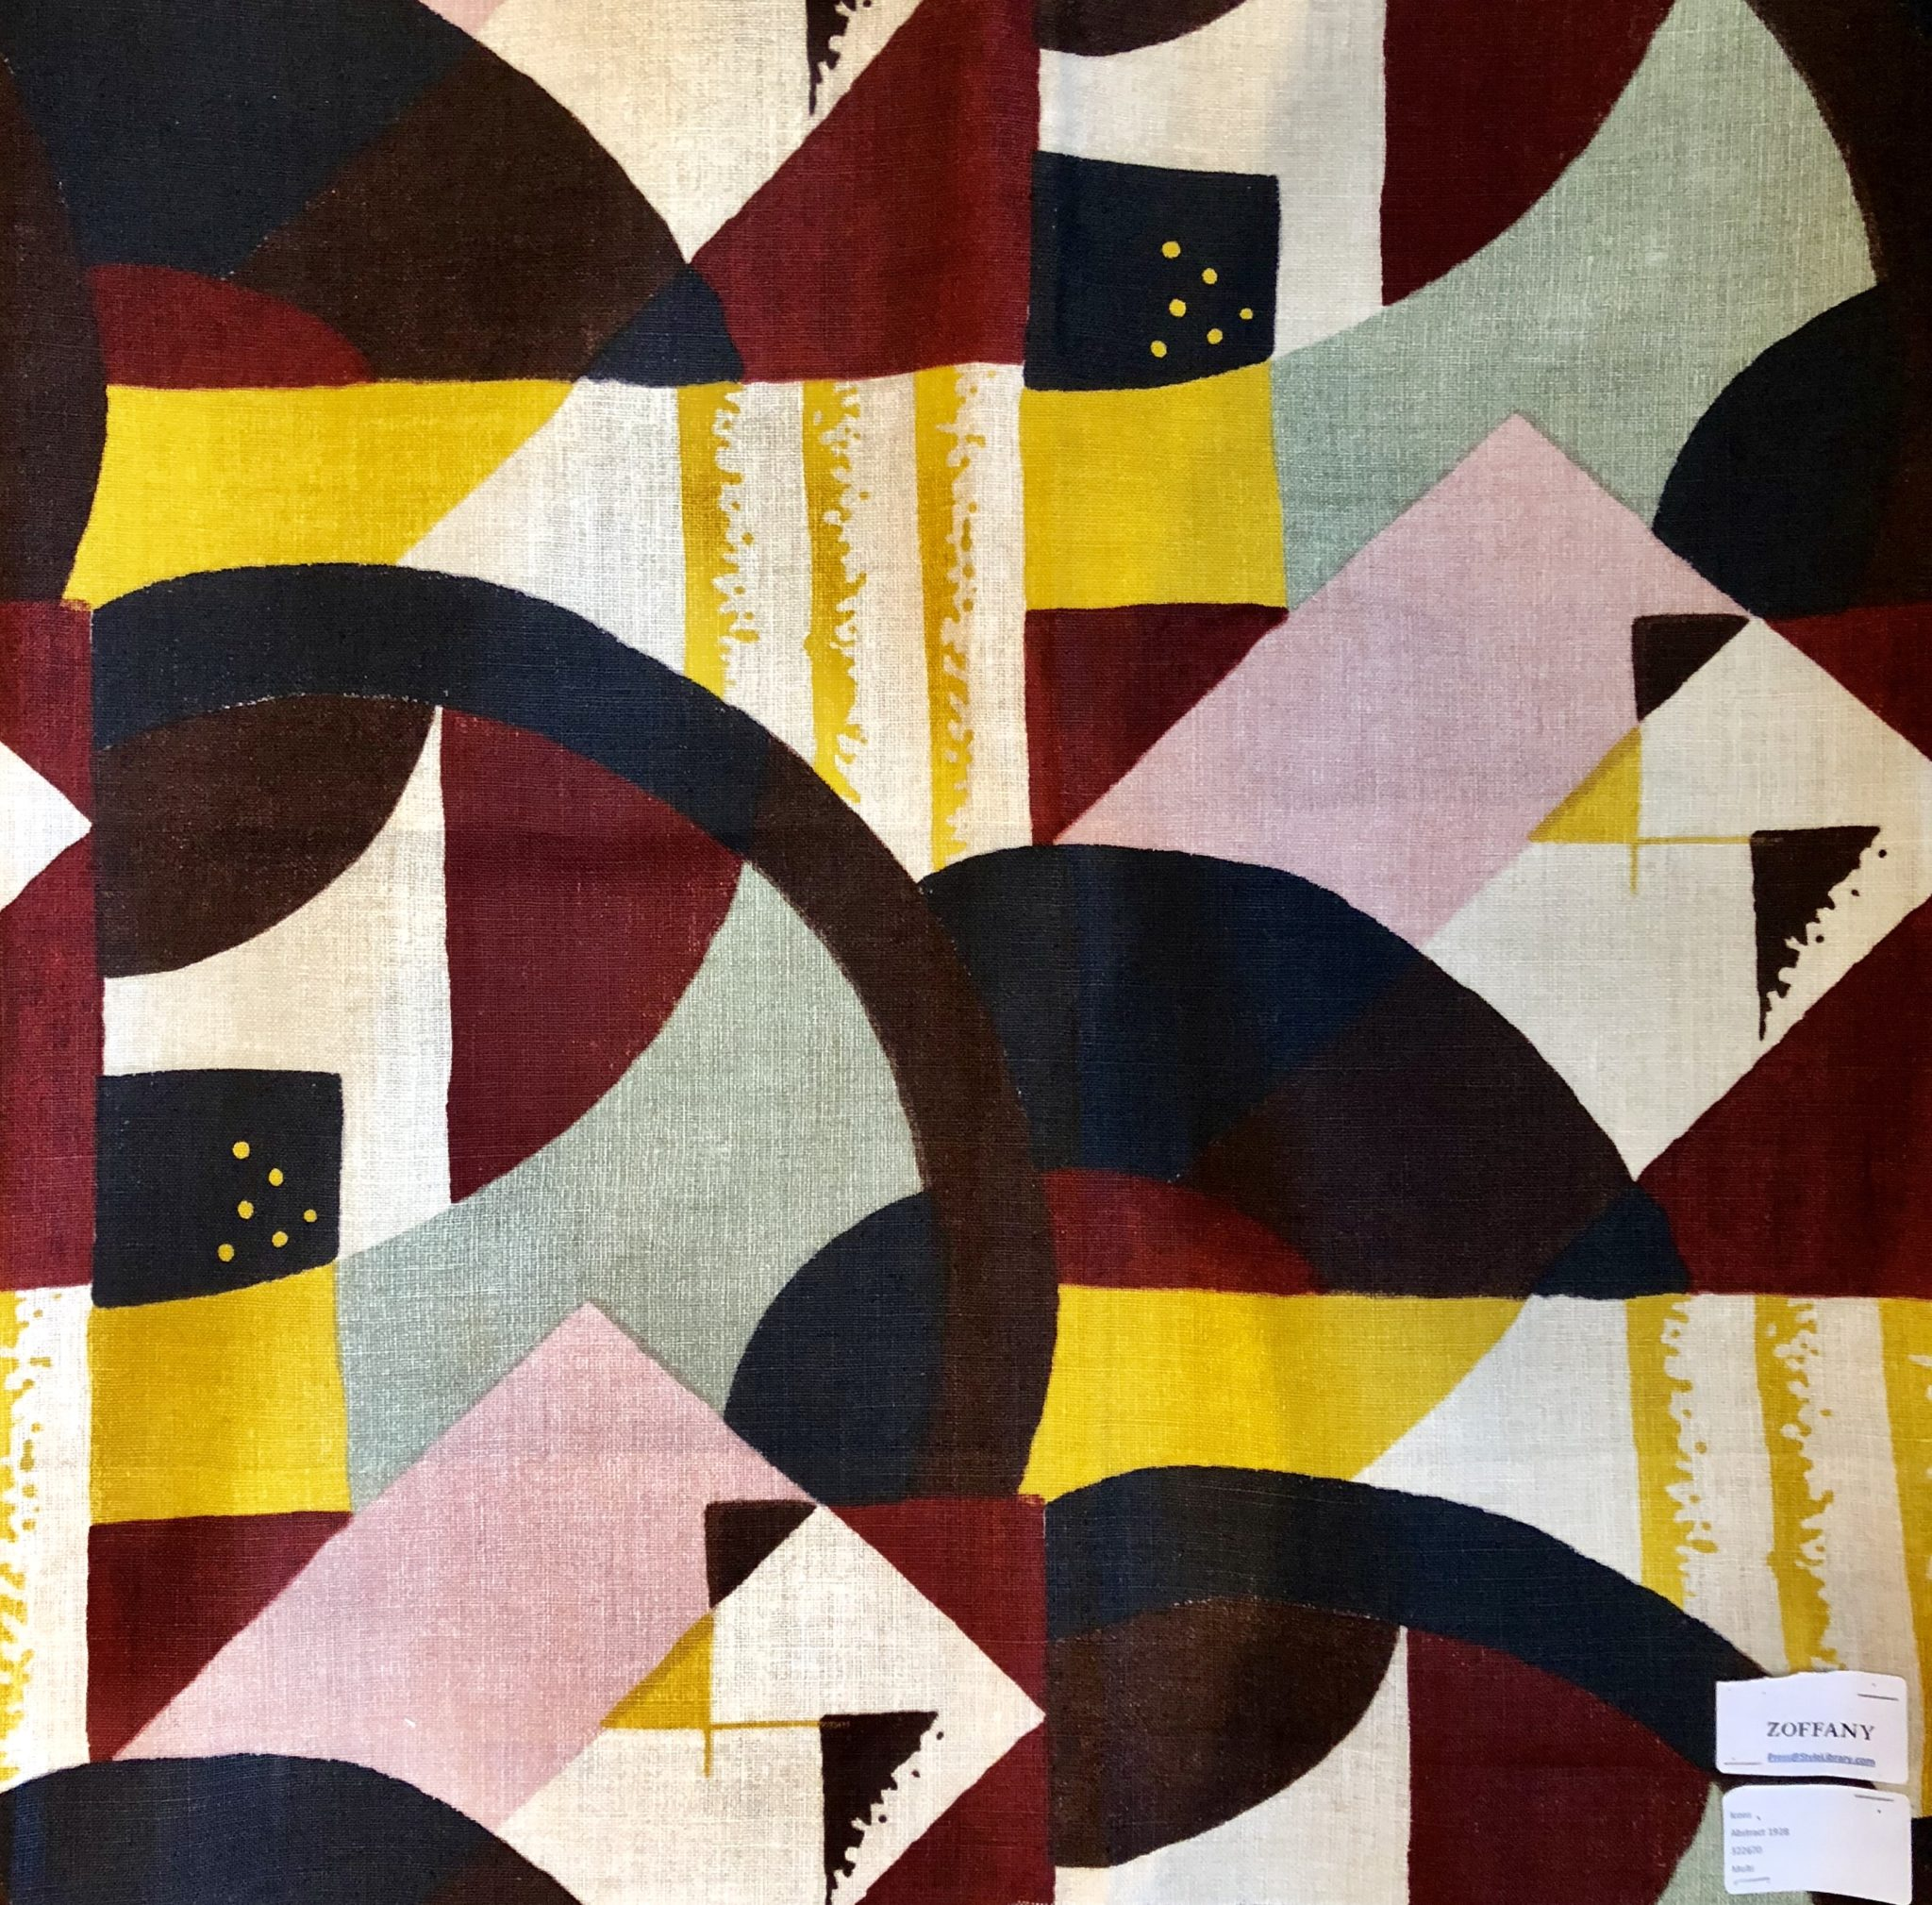 'Abstract 1928' fabric (322670) from the Icons Collection at Zoffany